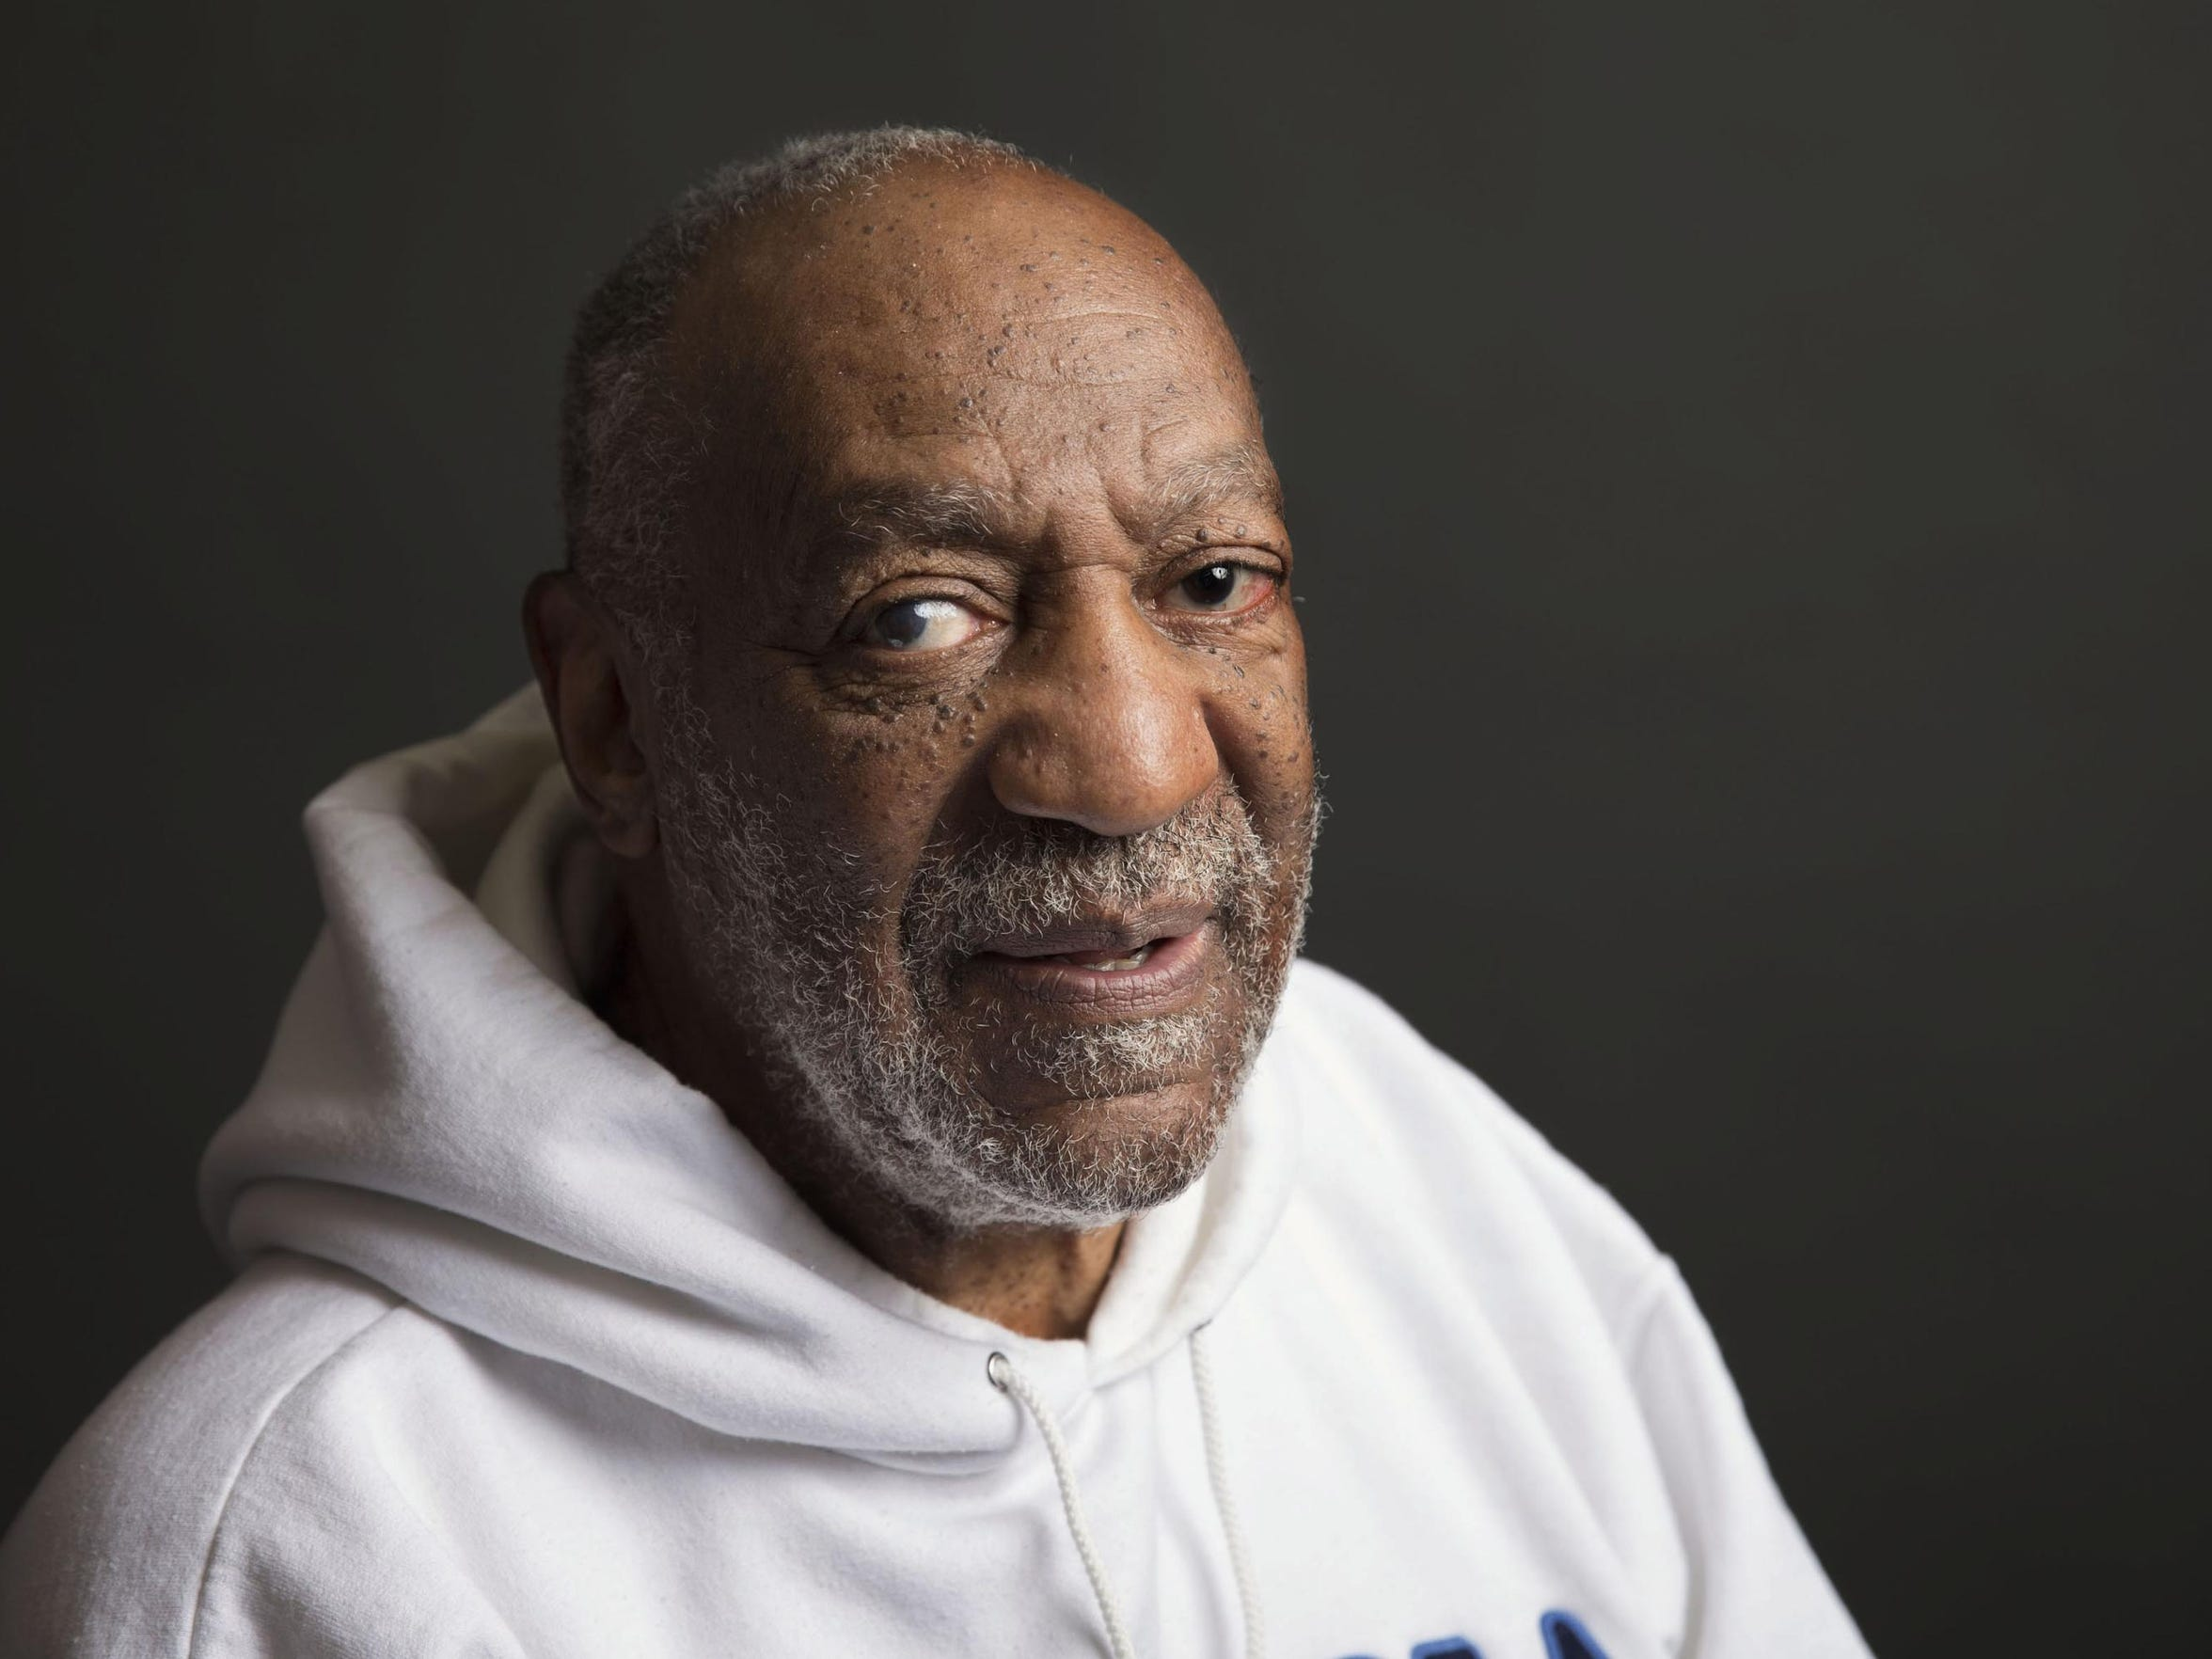 File portrait of Bill Cosby from Nov. 18, 2013.